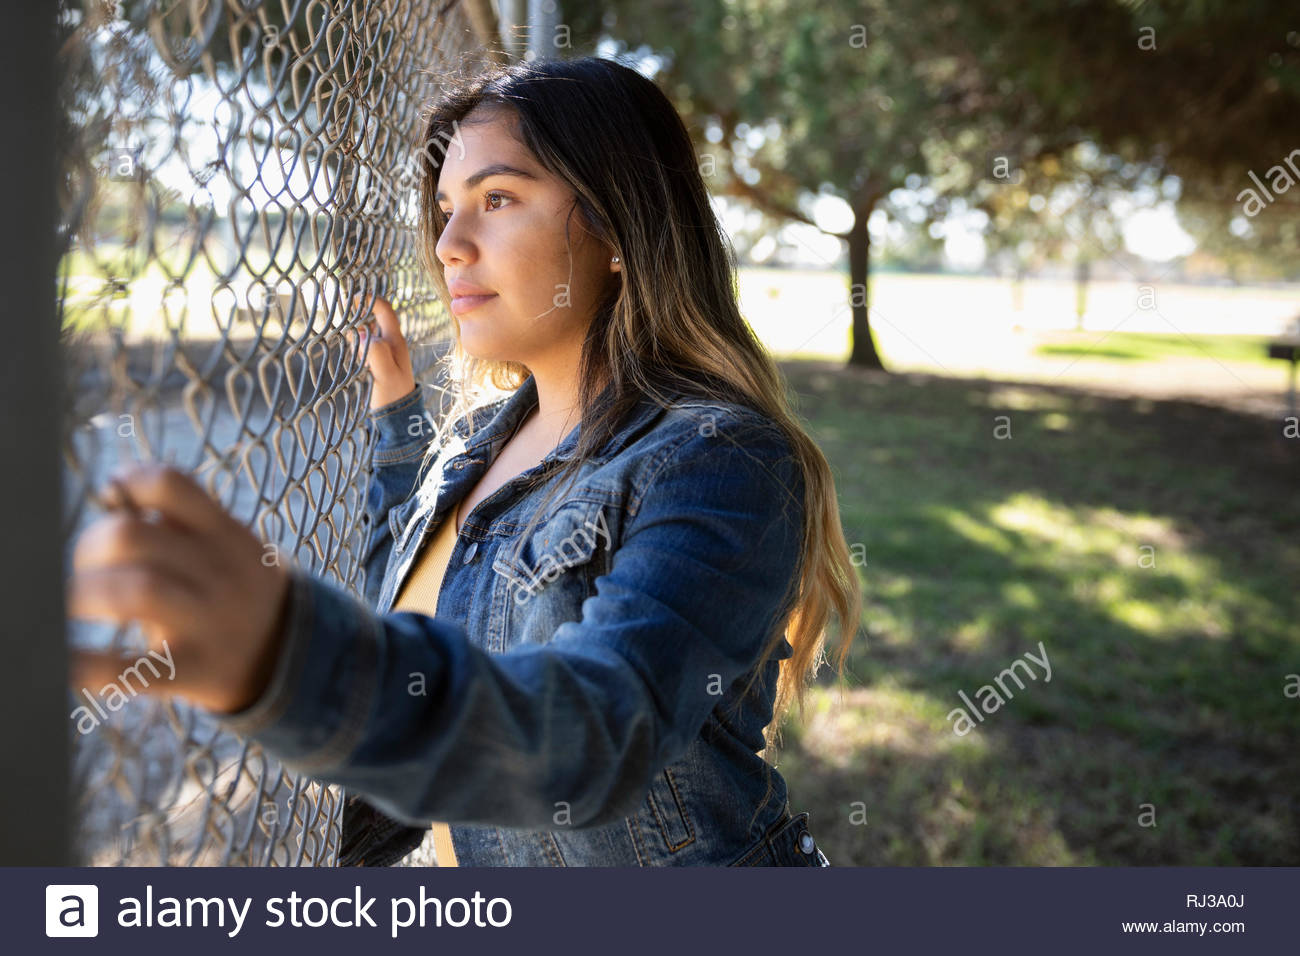 Thoughtful Latinx young woman standing at fence in park - Stock Image